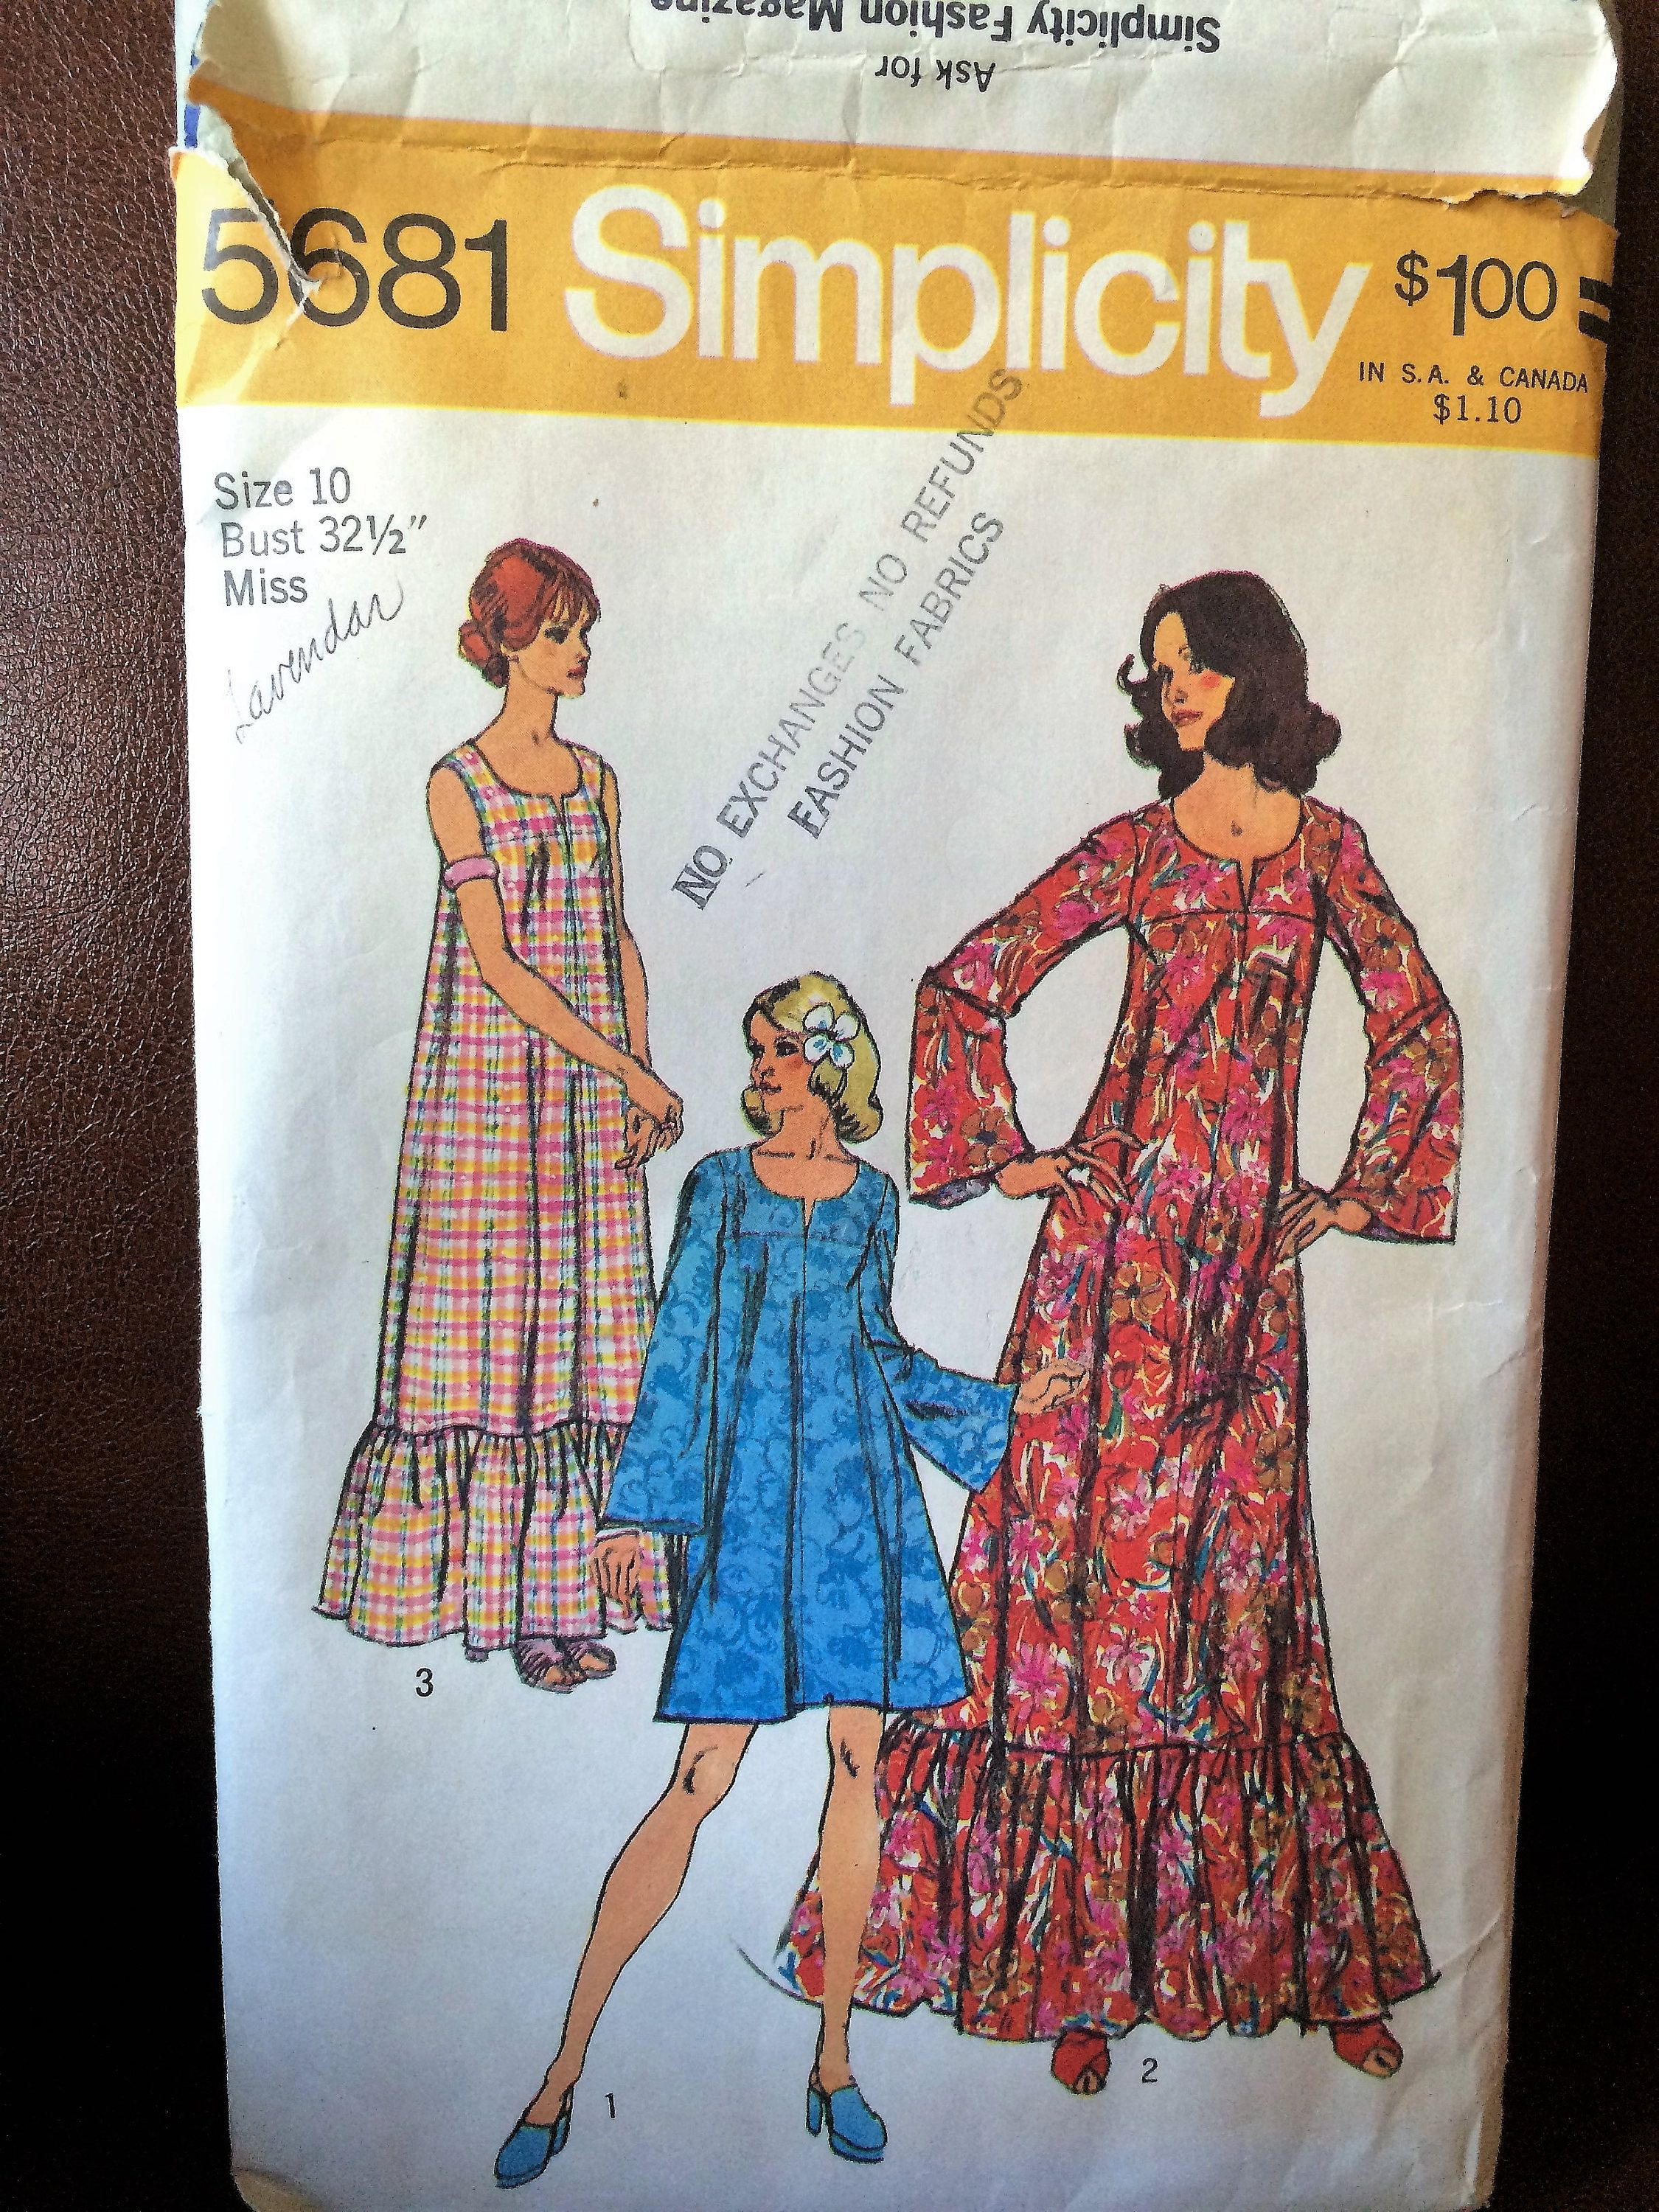 Hippy chick us long maxi dress or short peasant dress simplicity